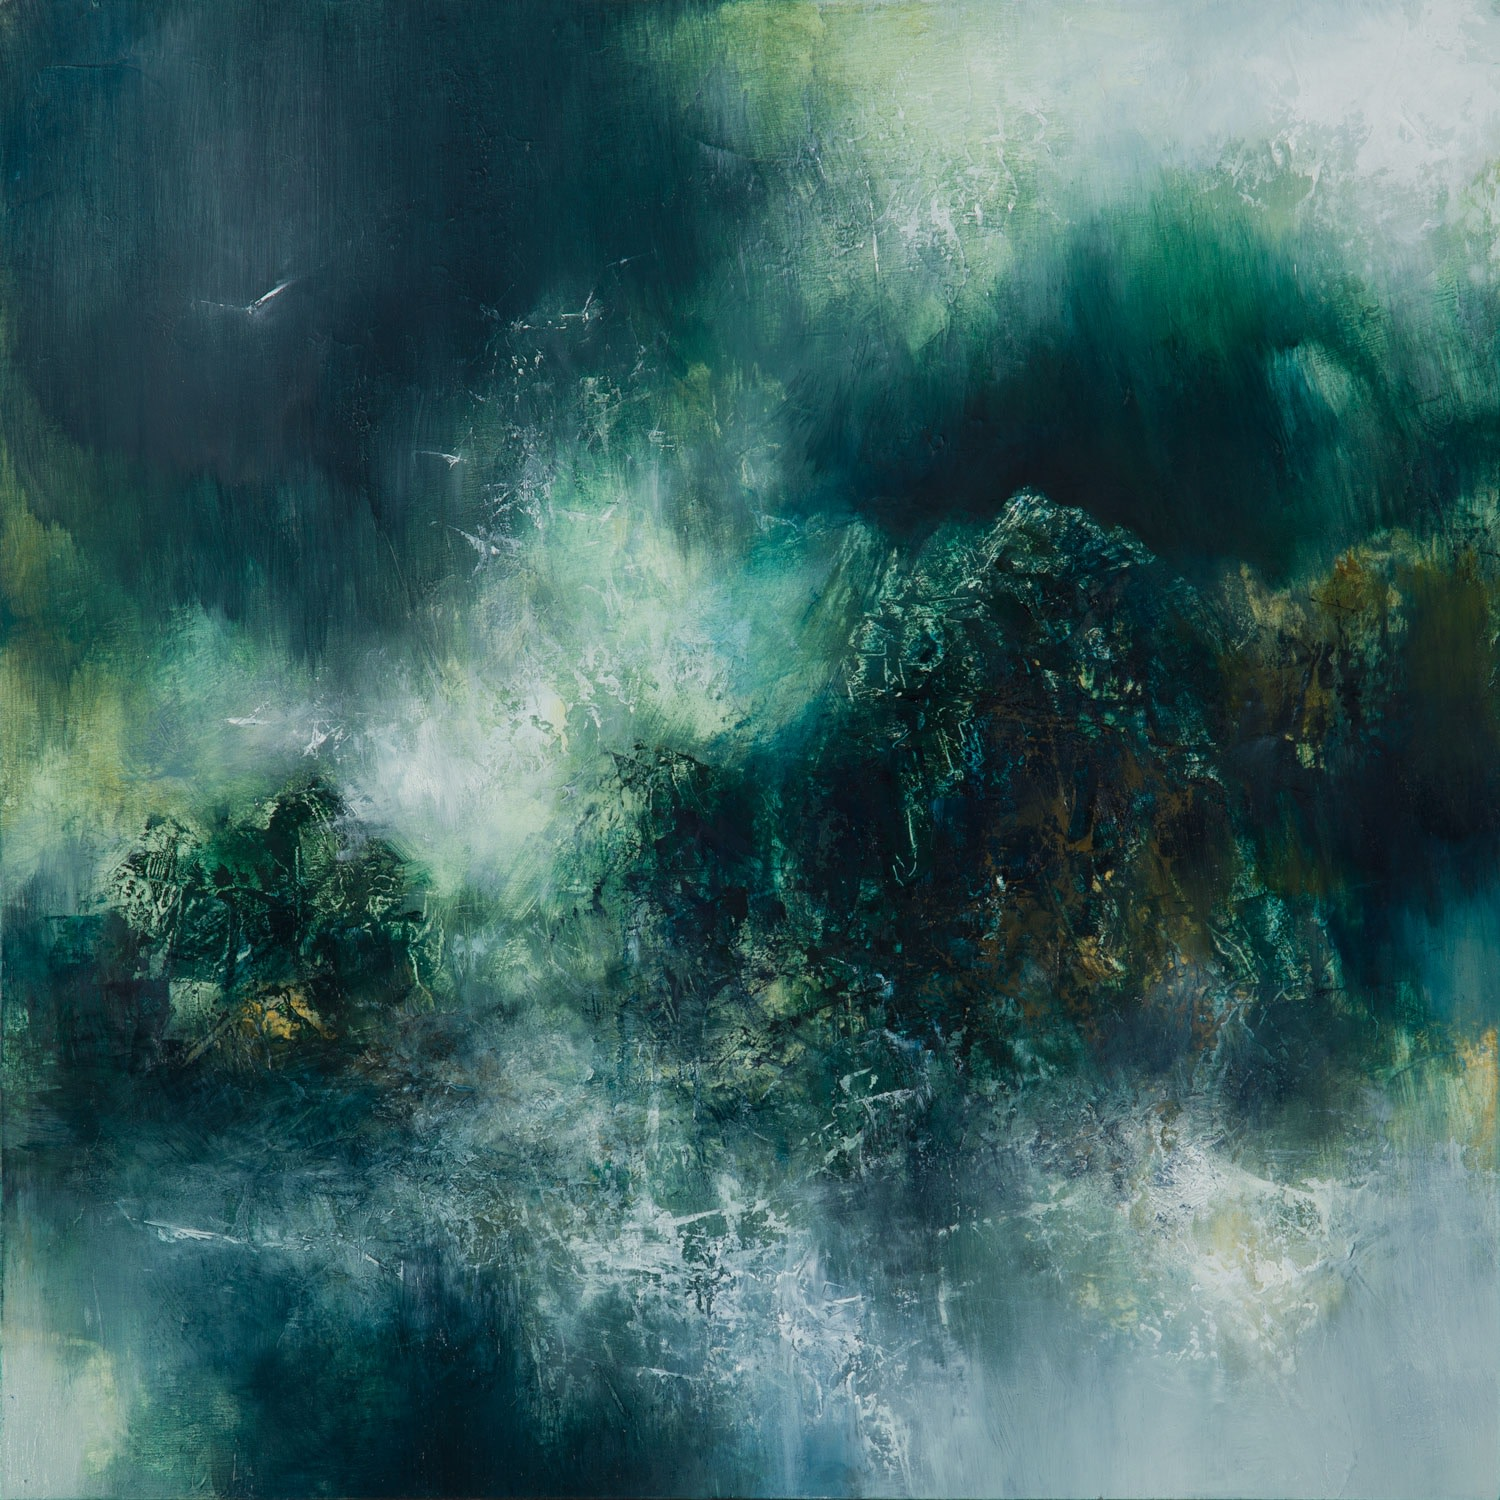 Kirstie Cohen Dark Mountains